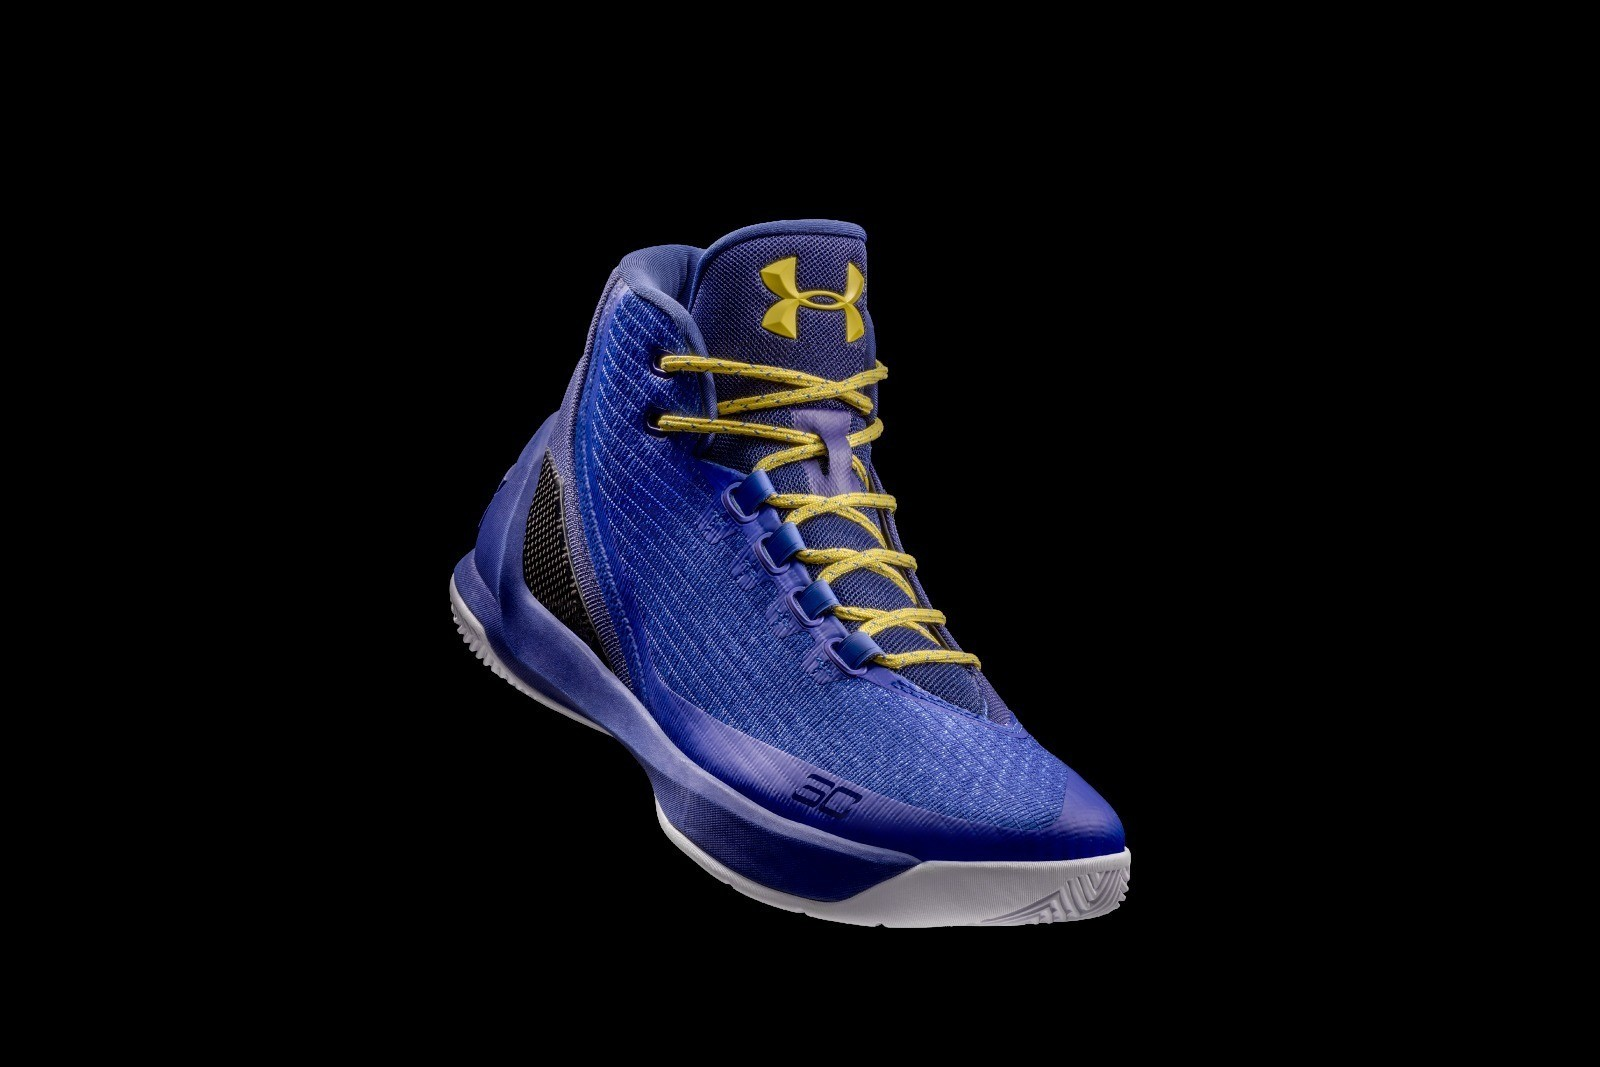 Under Armour releases Curry 3 shoe design 73c4dc757